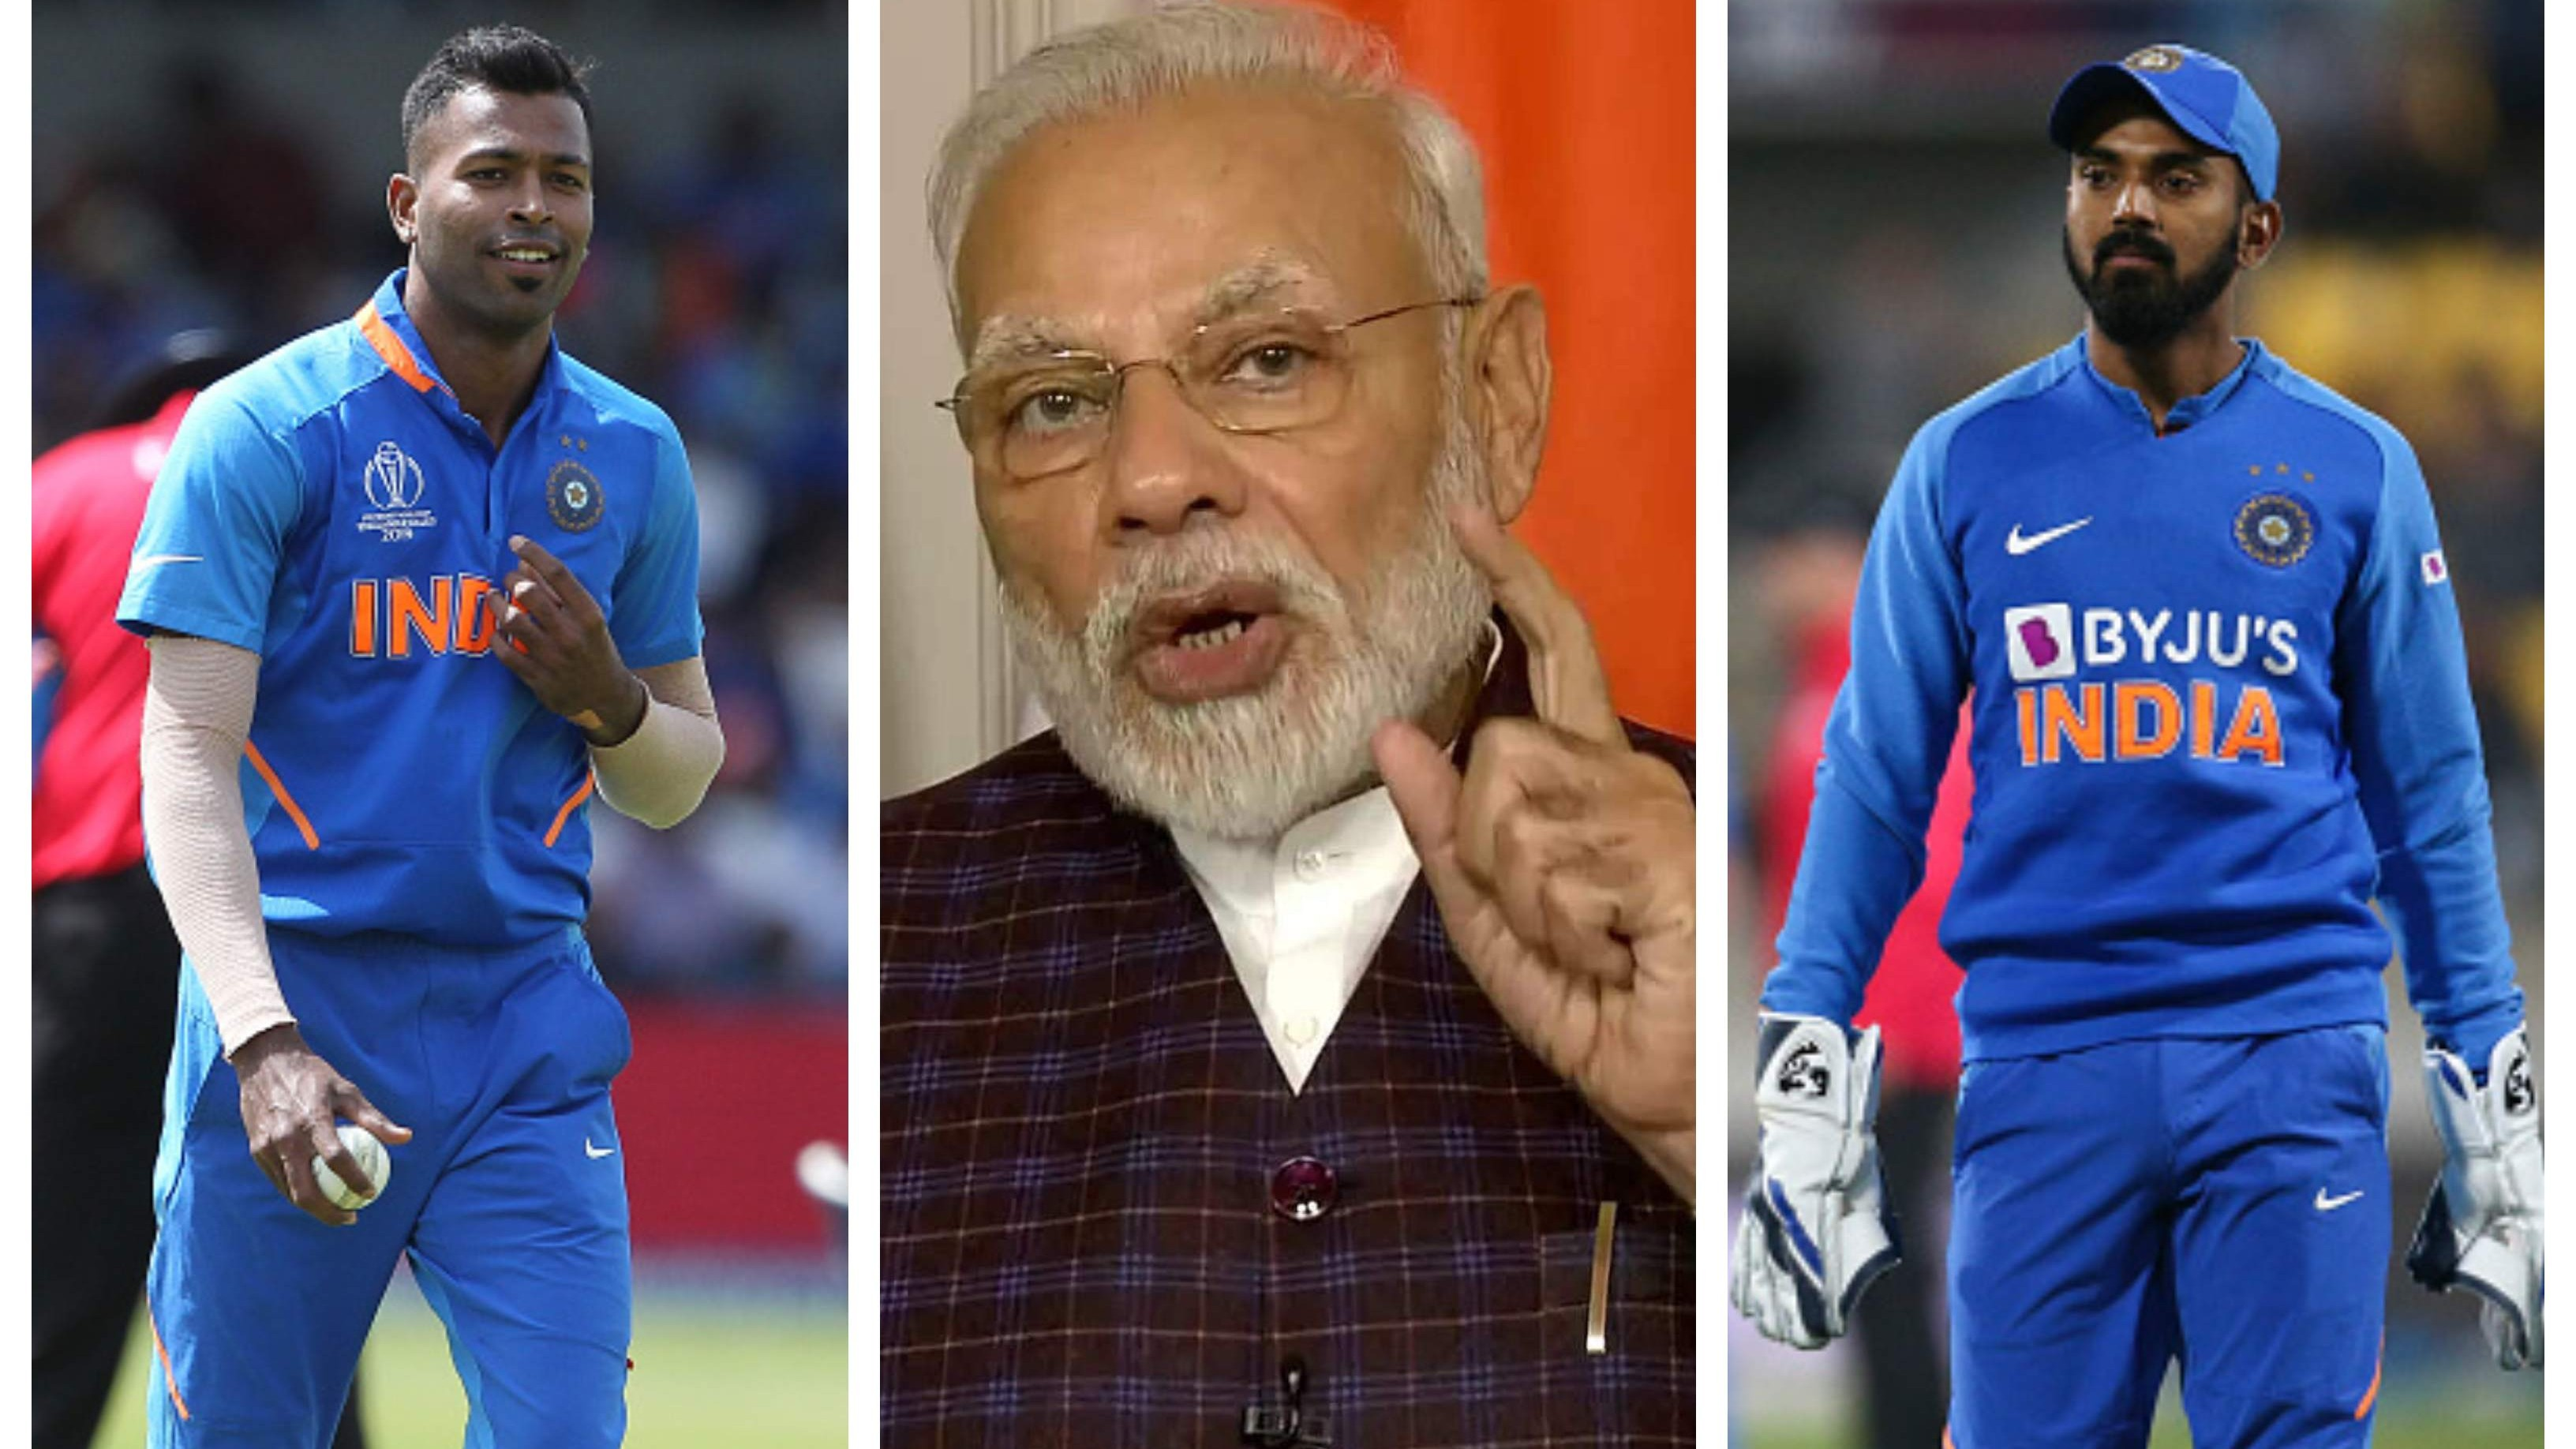 KL Rahul, Hardik Pandya support PM Modi's call to light candles on Sunday